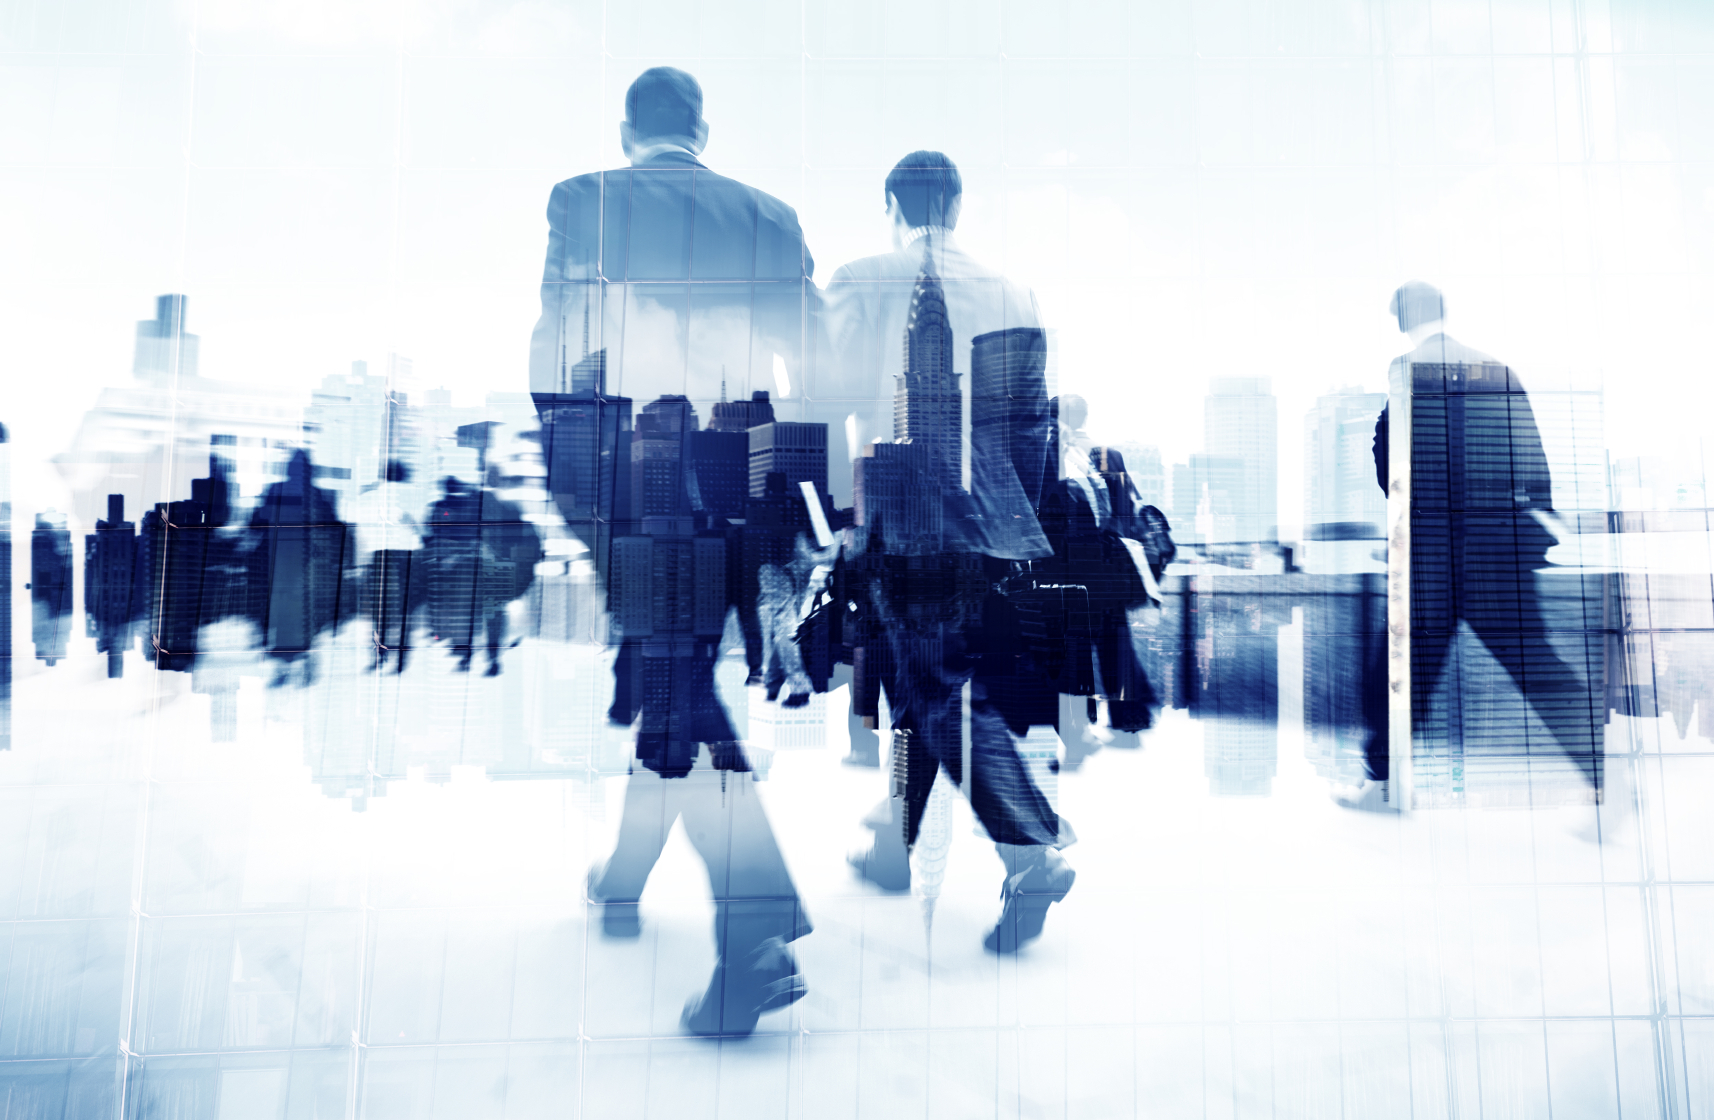 Abstract-Image-of-Business-People-Walking-on-the-Street-000039751666_Medium.jpg